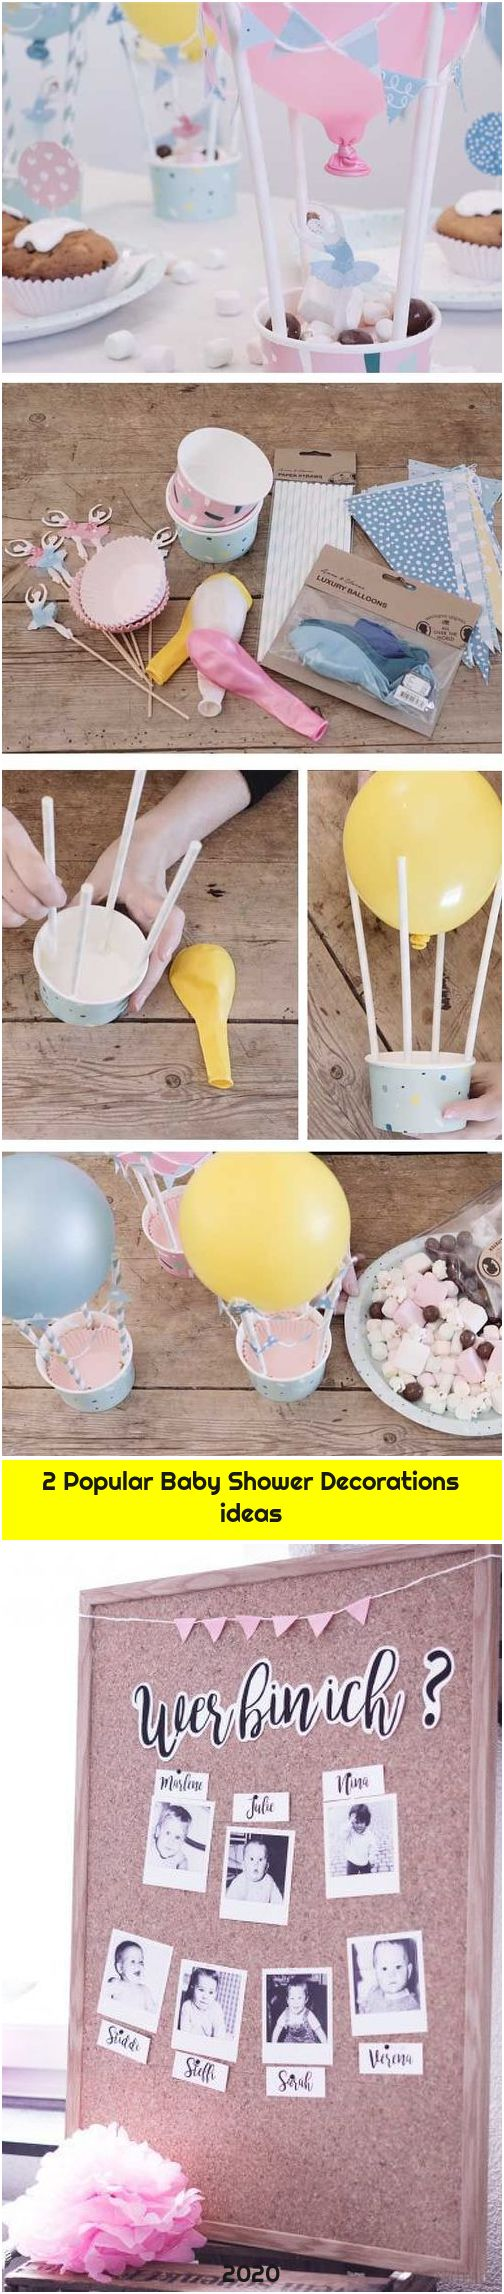 2 Popular Baby Shower Decorations ideas